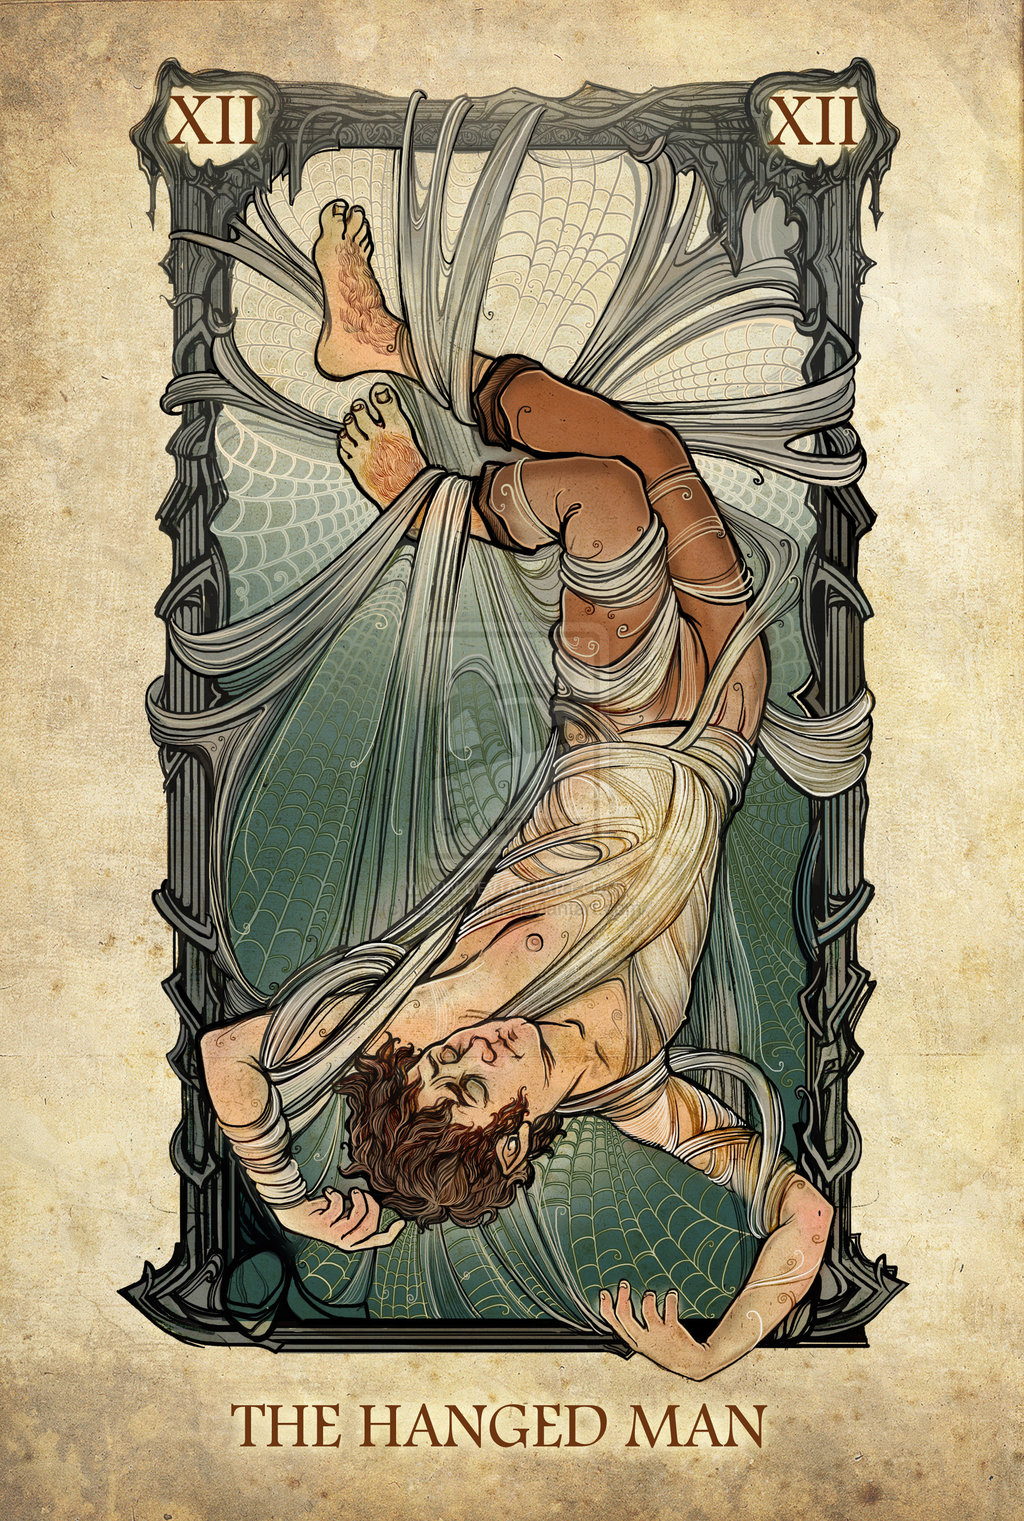 tarot__the_hanged_man_by_sceithailm-d6c8e9s